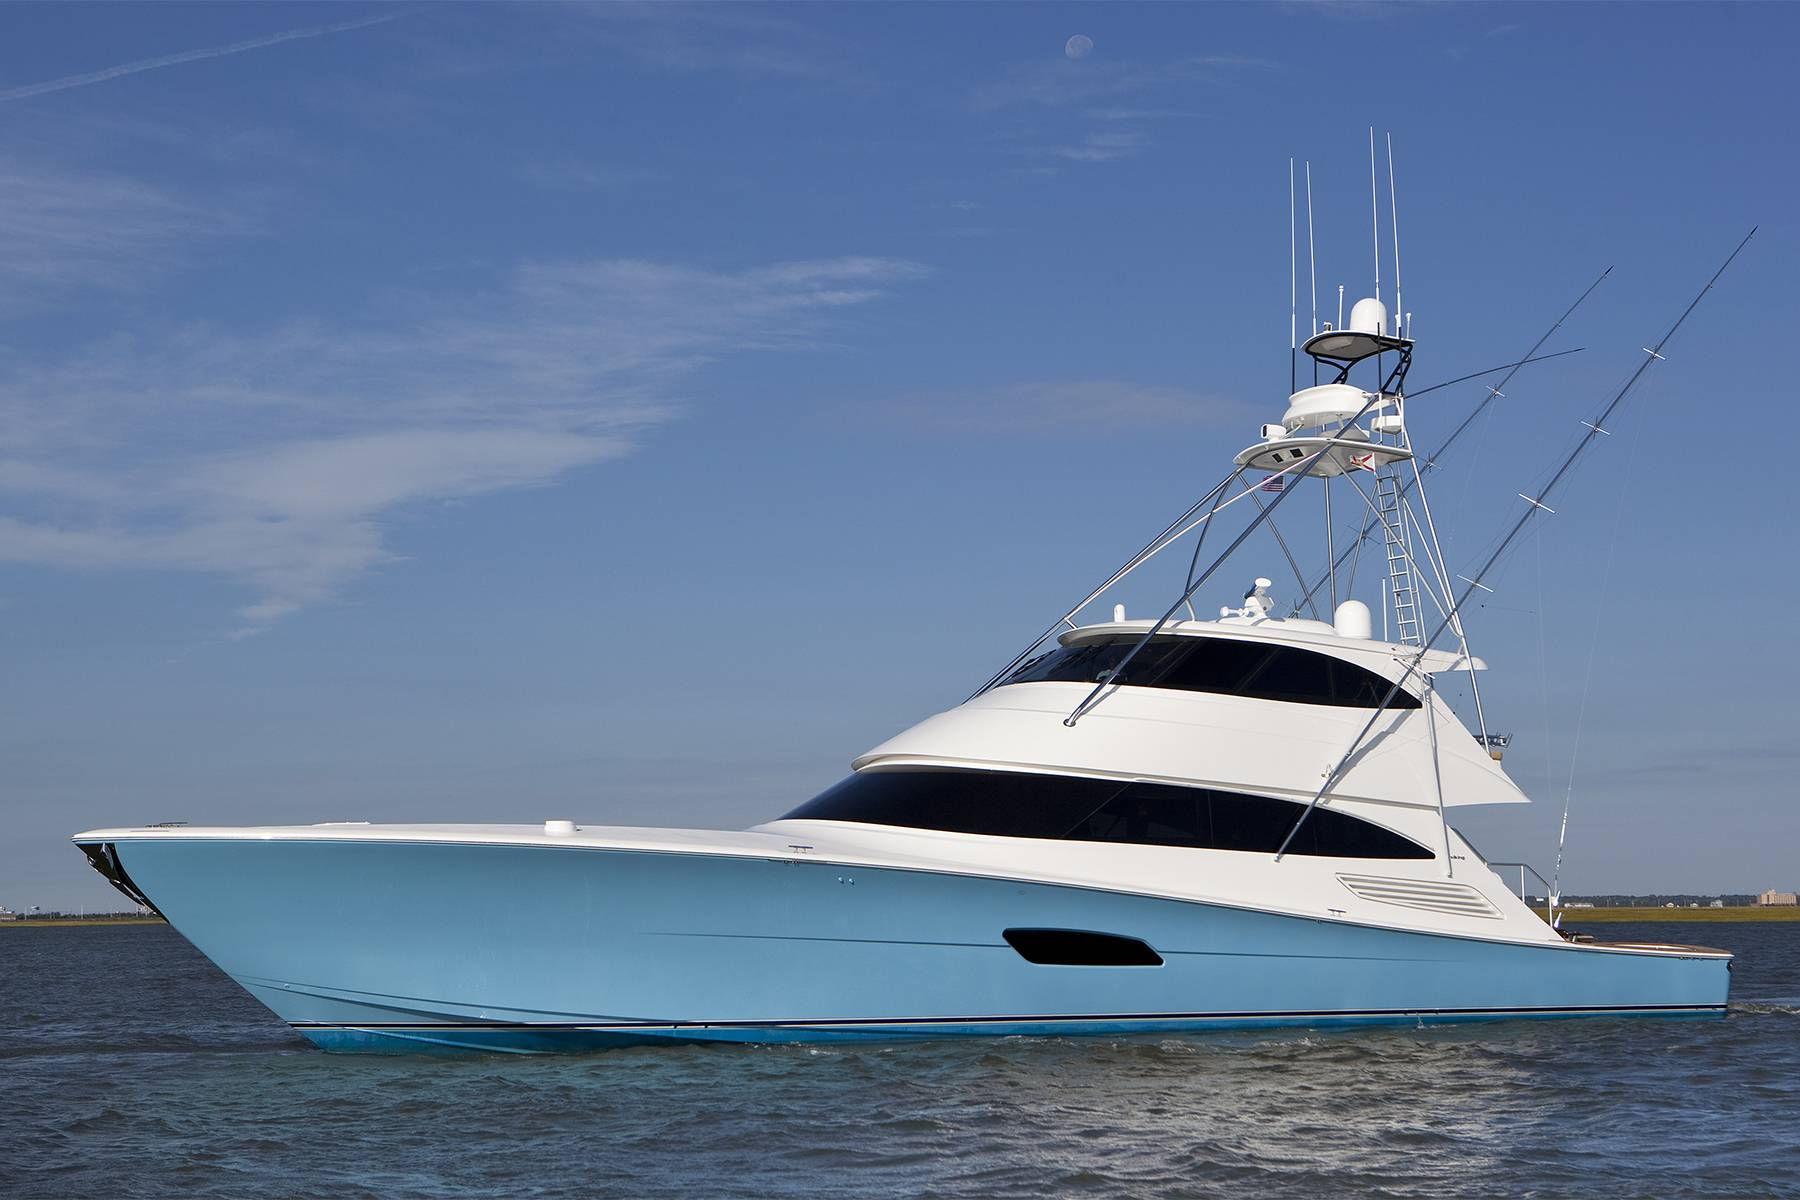 Viking 92 targets quiet performance for Viking sport fish